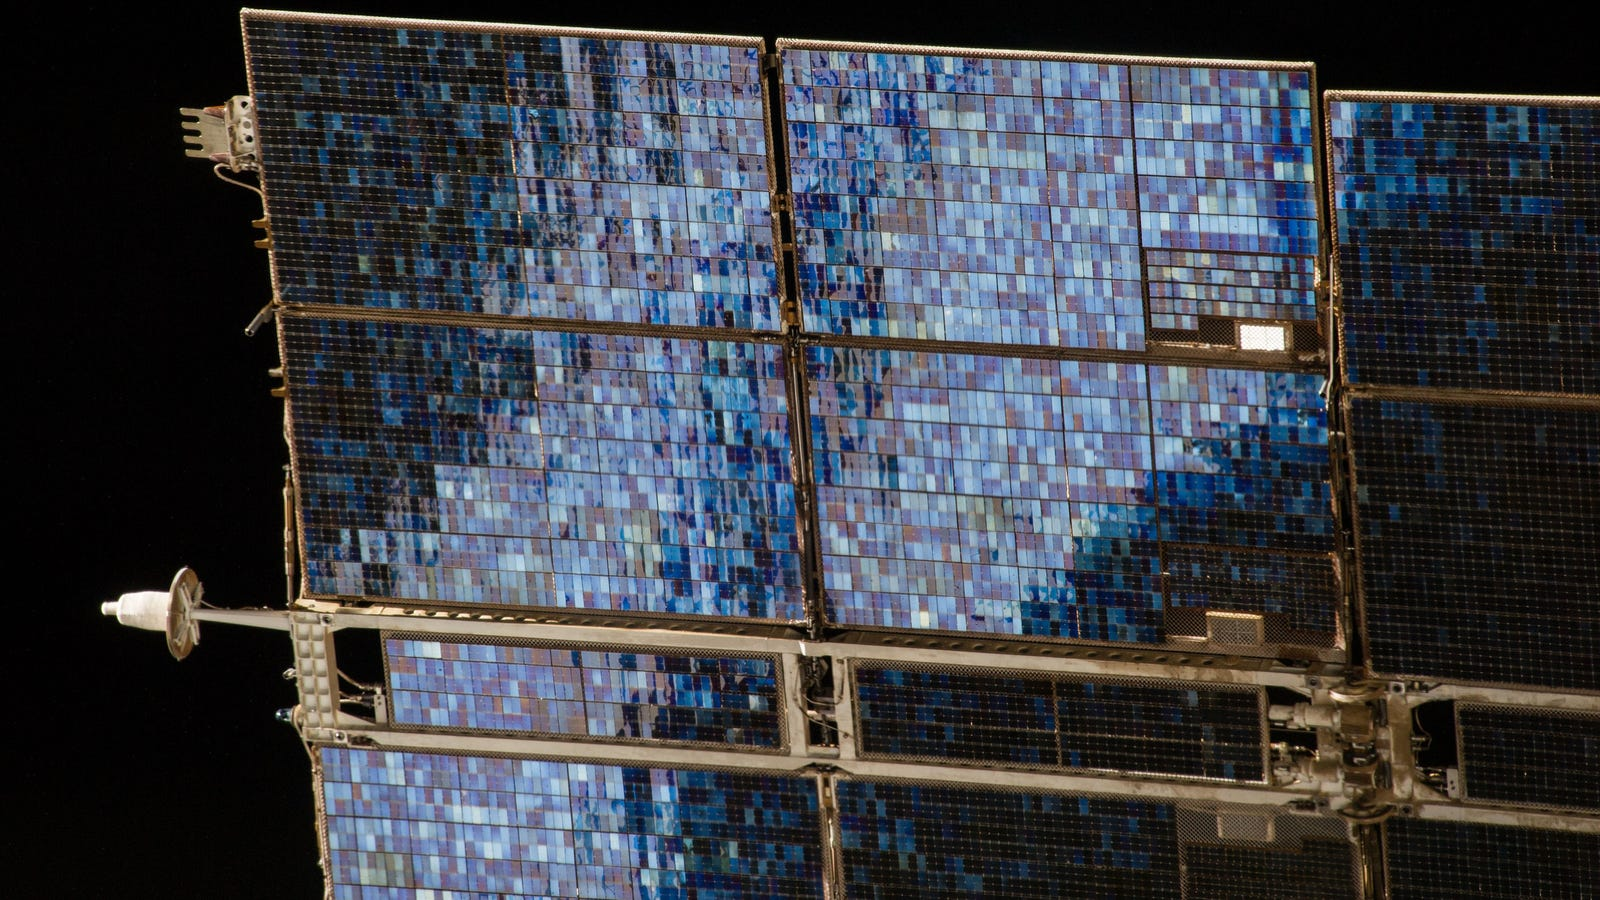 Solar Panel Is A Glittering Blue Mosaic Against The